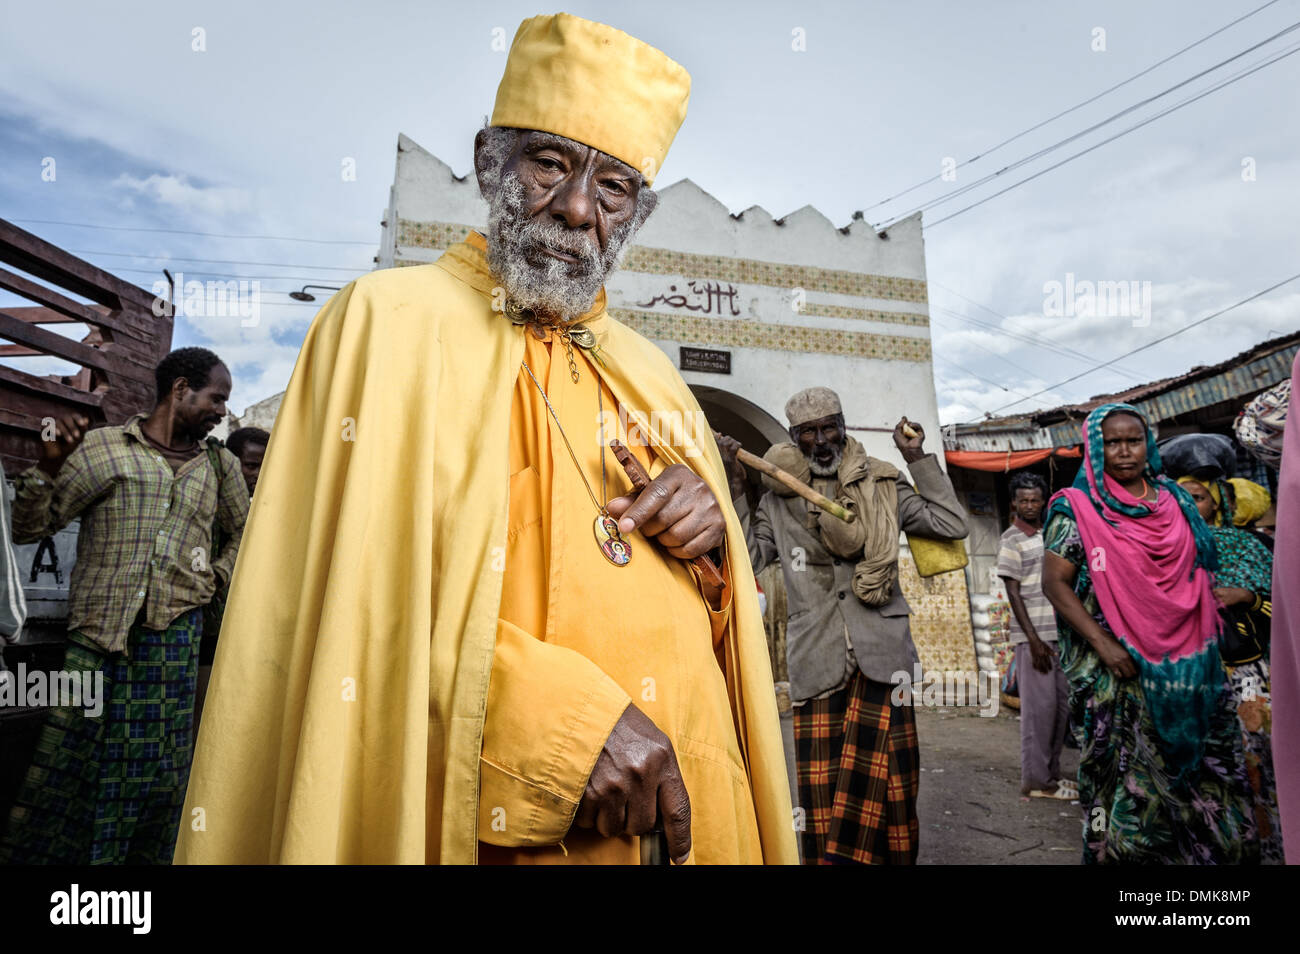 Old Christian monk at the Showa gate, Harar, Ethiopia, Africa - Stock Image